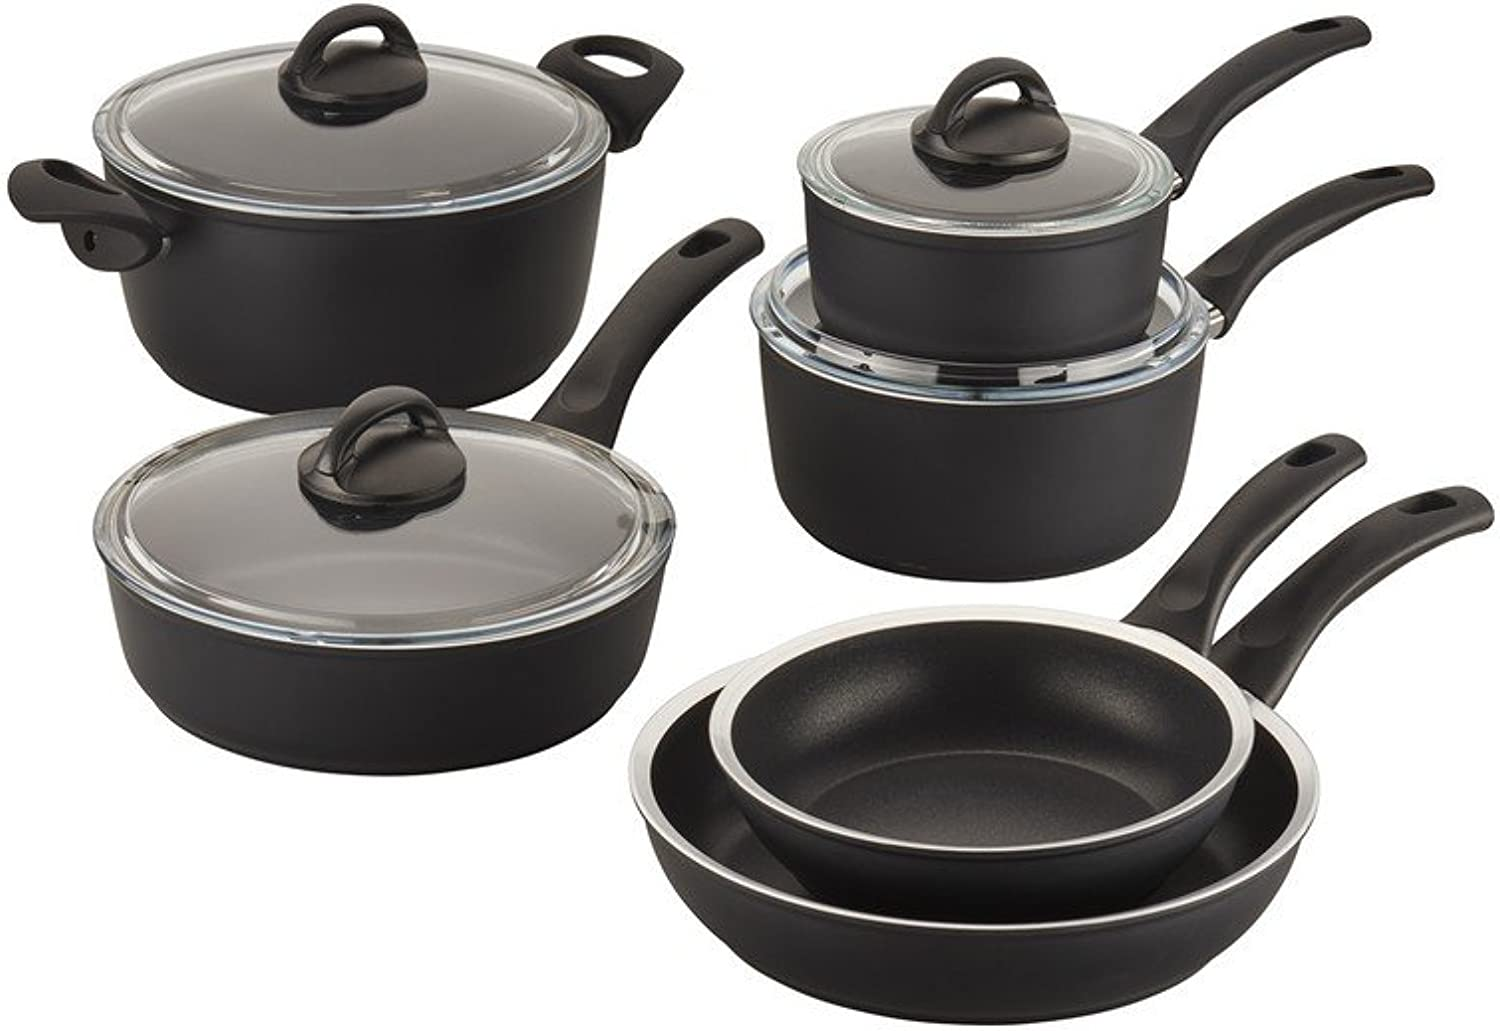 Ballarini 75001-638 Como Forged Aluminum Nonstick Cookware Set, 10-piece, Black